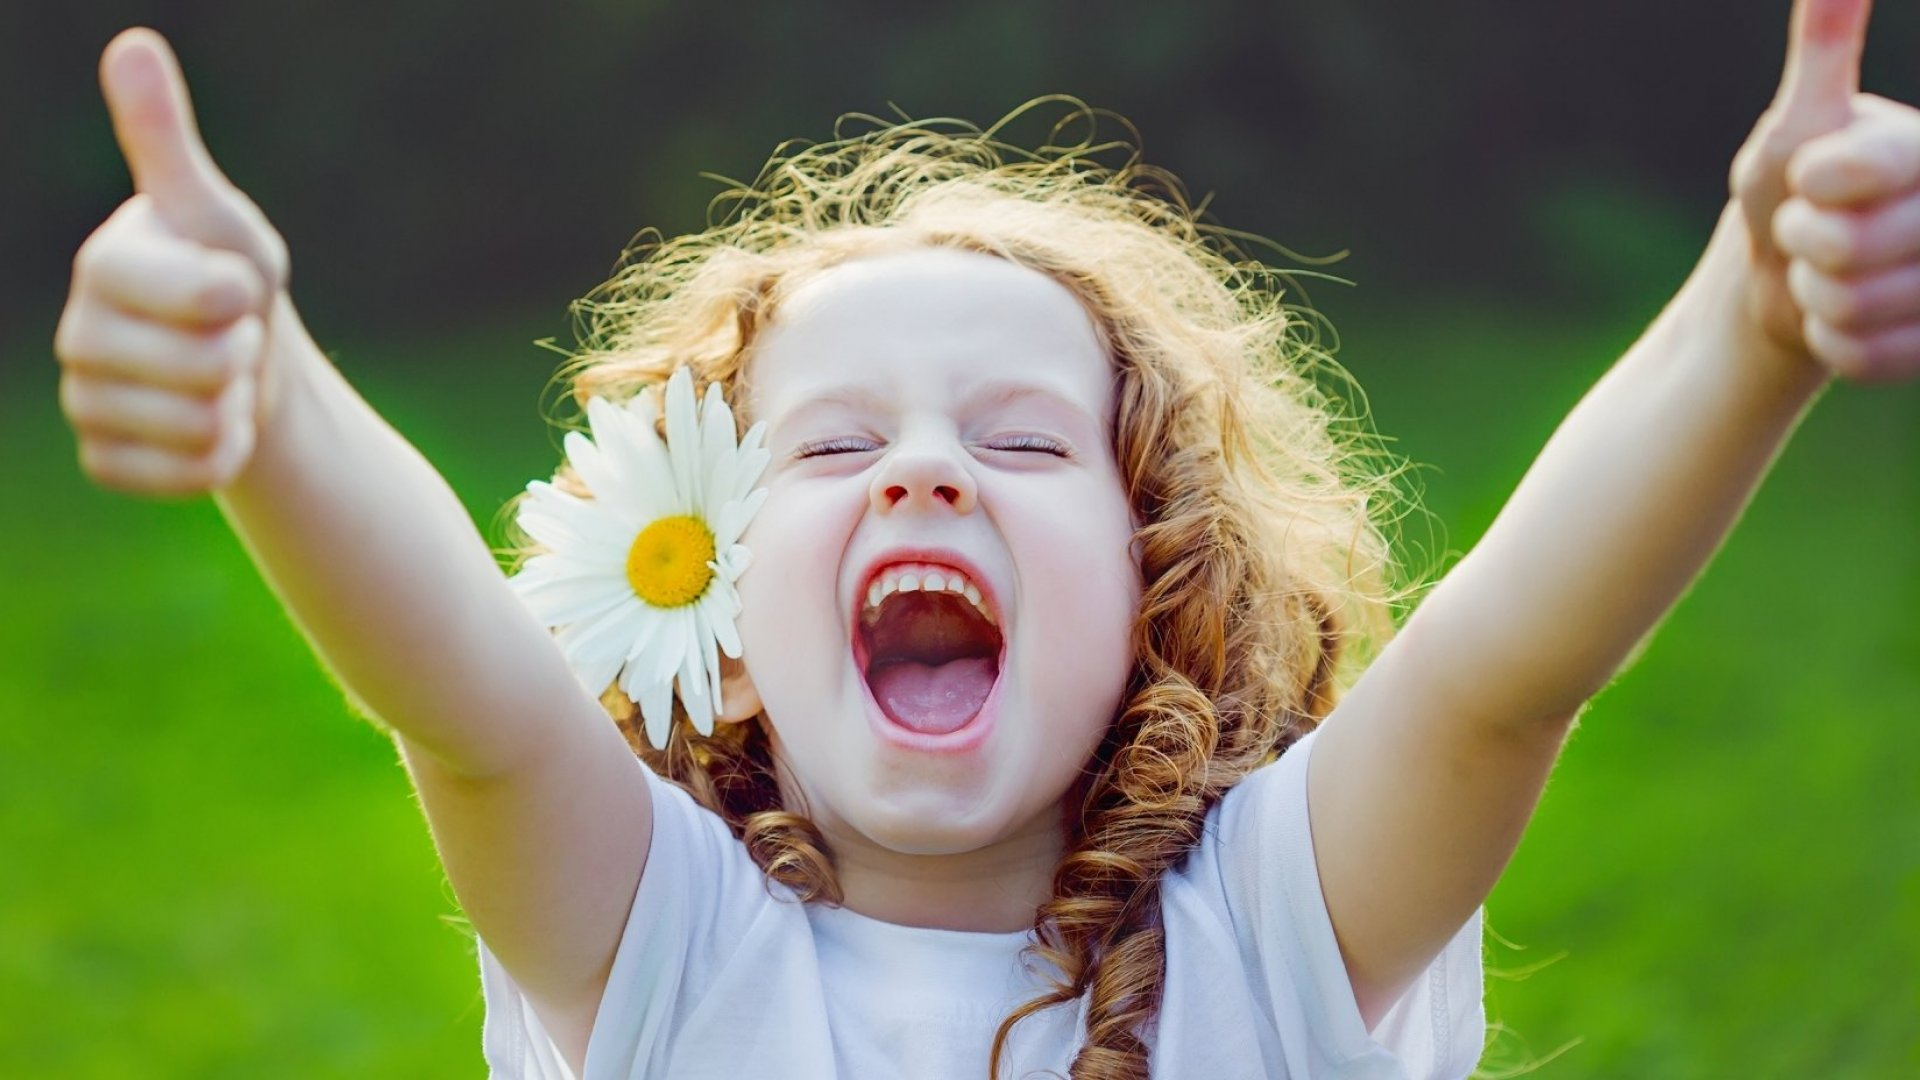 If You Want to Be Truly Happy, Stop Worrying About These 24 Things in Your Life